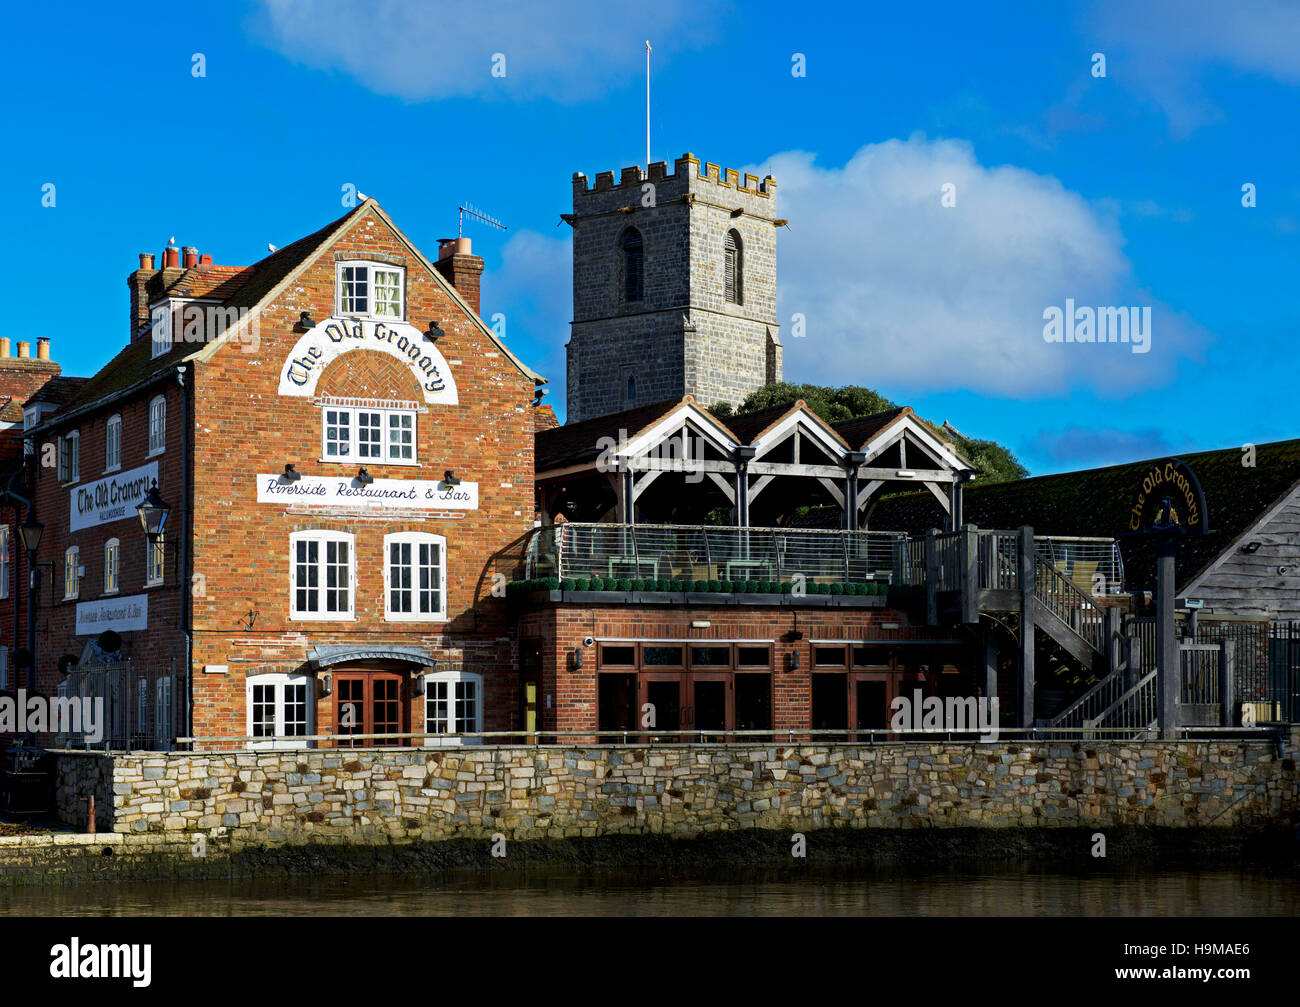 The Old Granary restaurant and bar, Wareham, Dorset, England UK - Stock Image